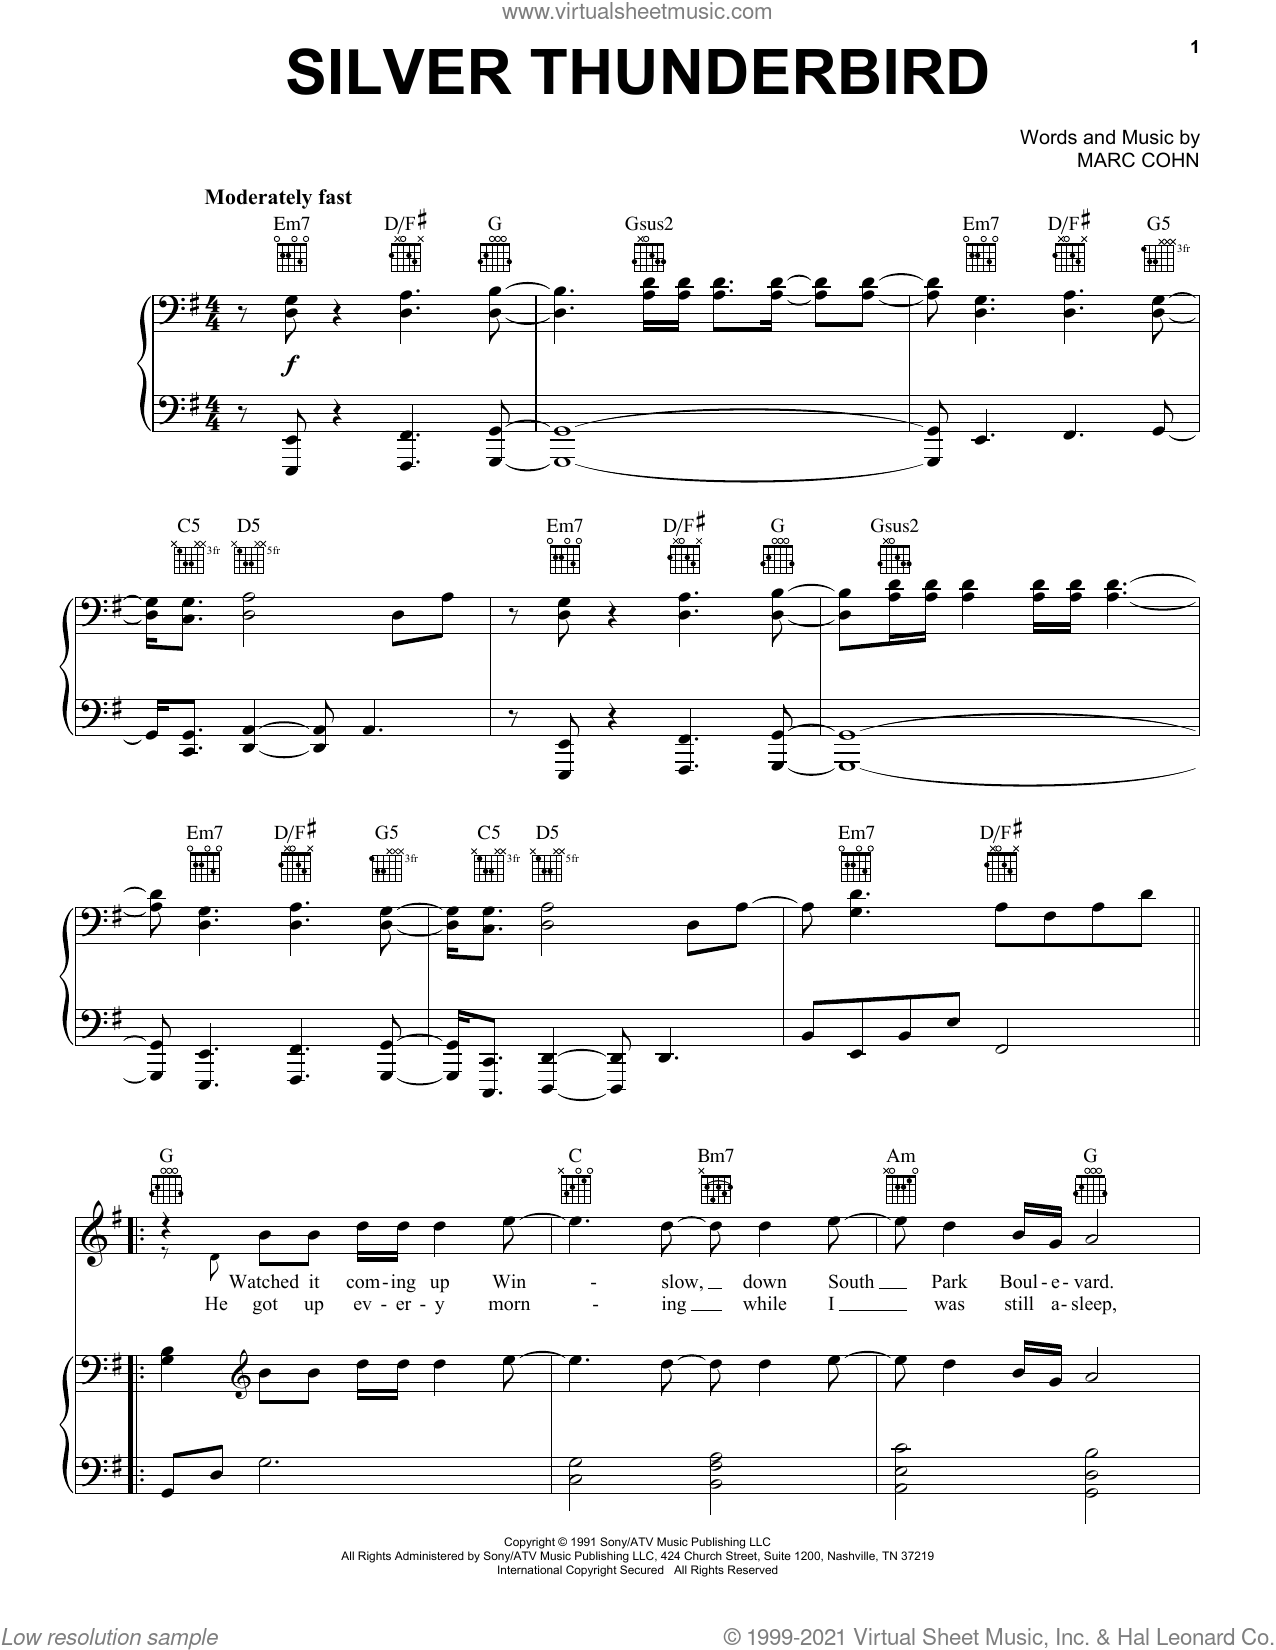 Silver Thunderbird sheet music for voice, piano or guitar by Marc Cohn, intermediate skill level